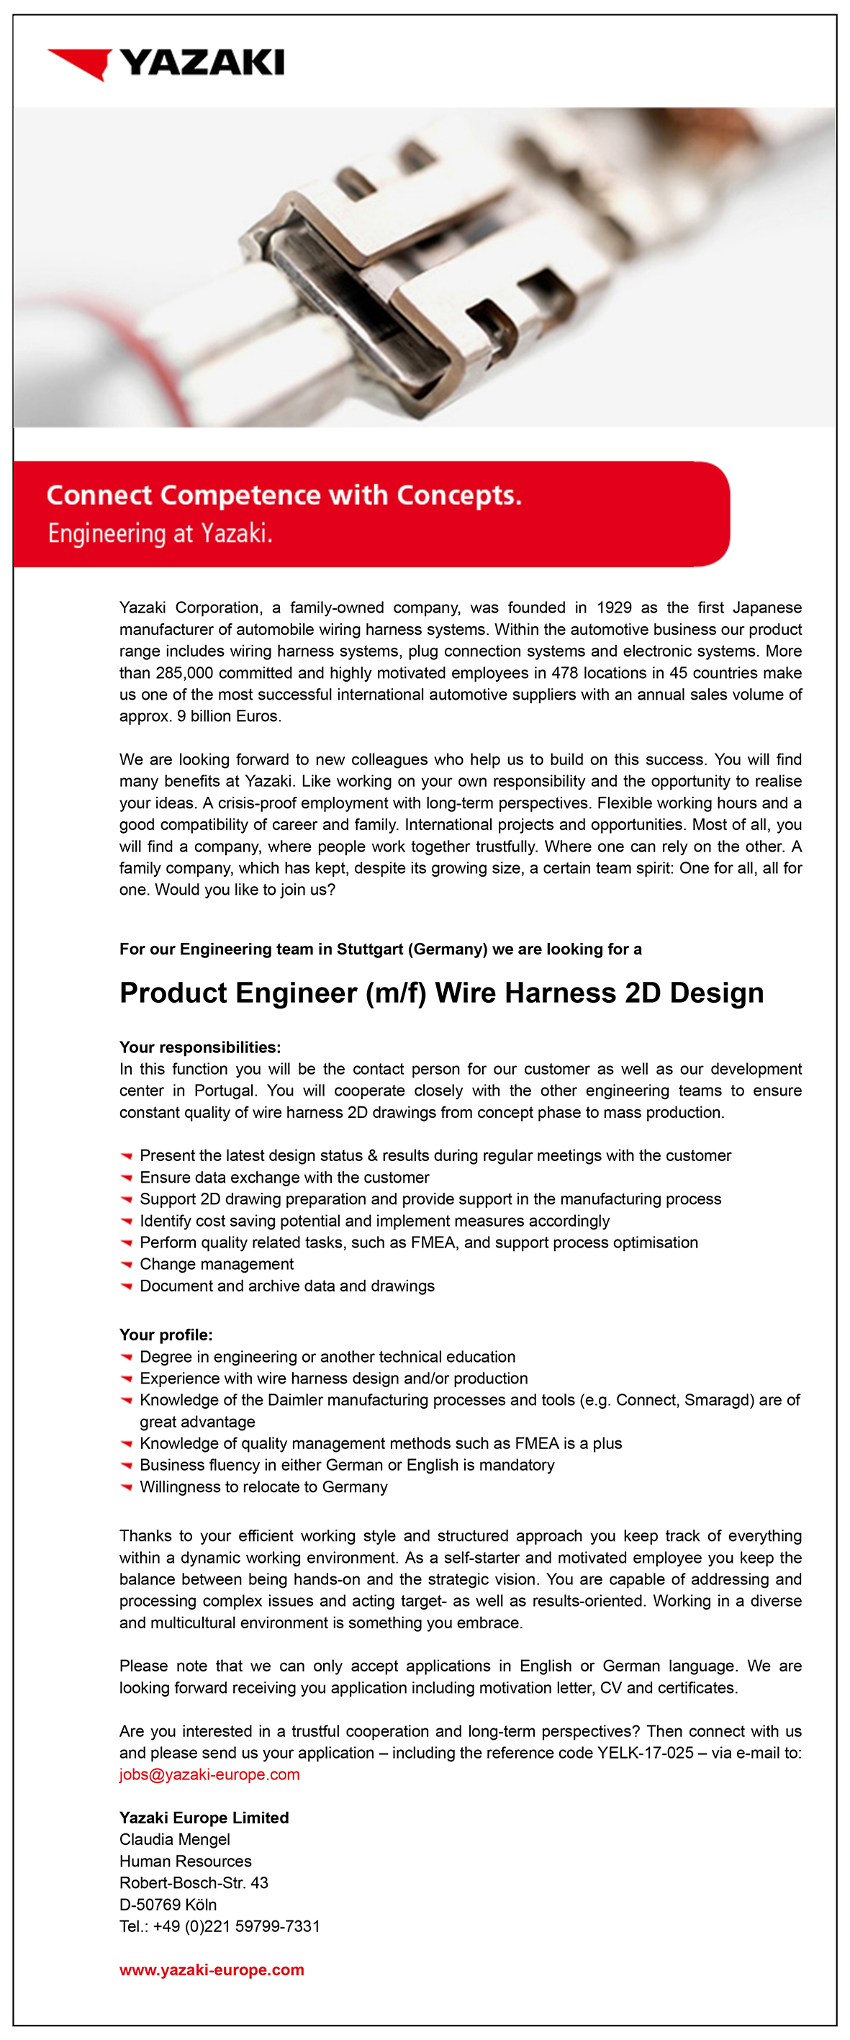 Wire Harness Engineer Jobs cable embly wire and cable ... on speedometer design, gas tank design, cable design, radiator design, computer design, antenna design, manifold design, generator design, exhaust design, motor design, seat design, spark plug design, remote control design, pump design, gauge design, bracket design, fan design, intercooler design, frame design, suspension design,